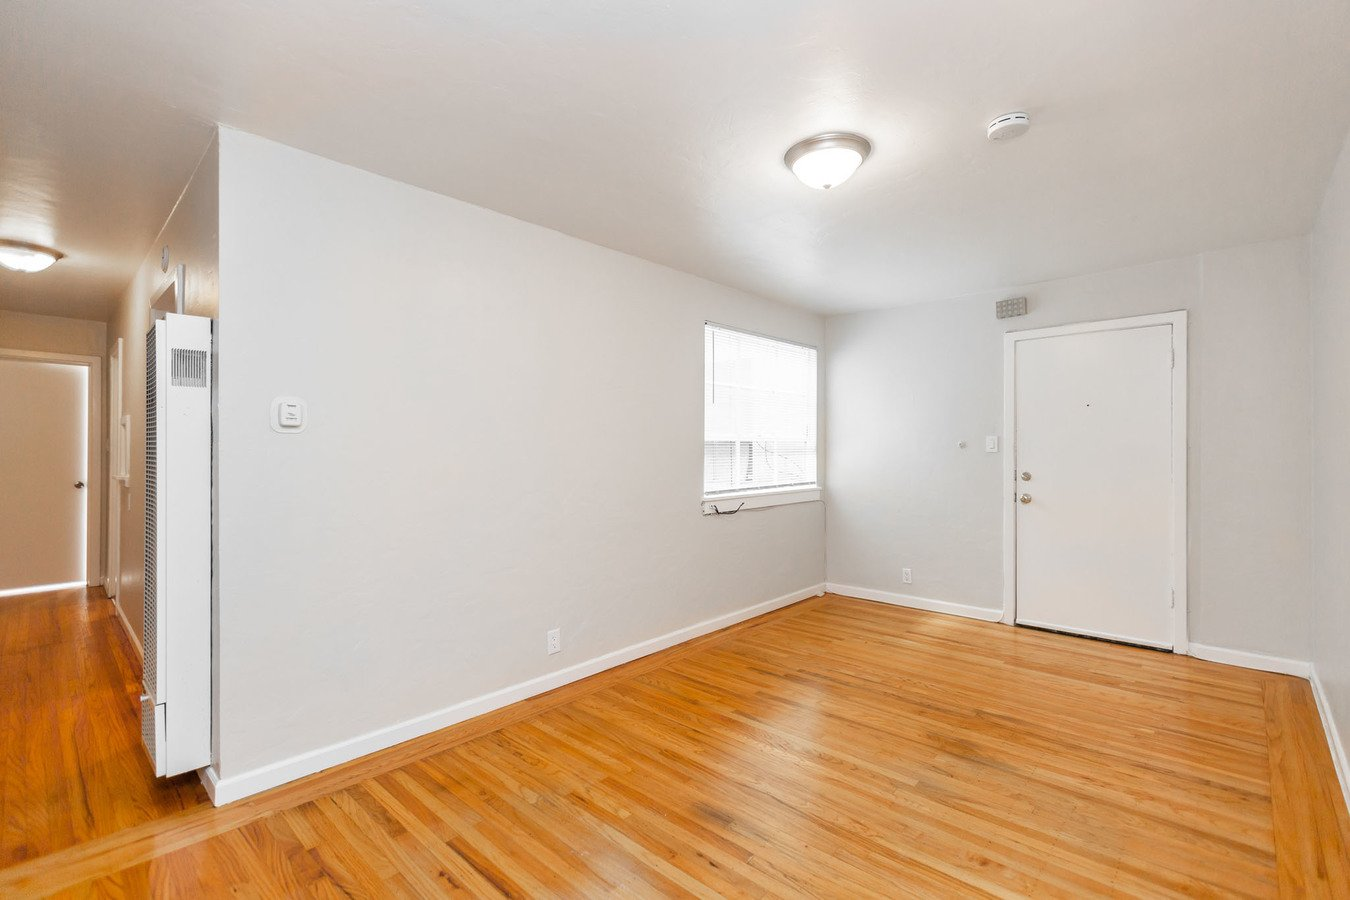 1 Bedroom 1 Bathroom Apartment for rent at 784 Geary Apartments in San Francisco, CA